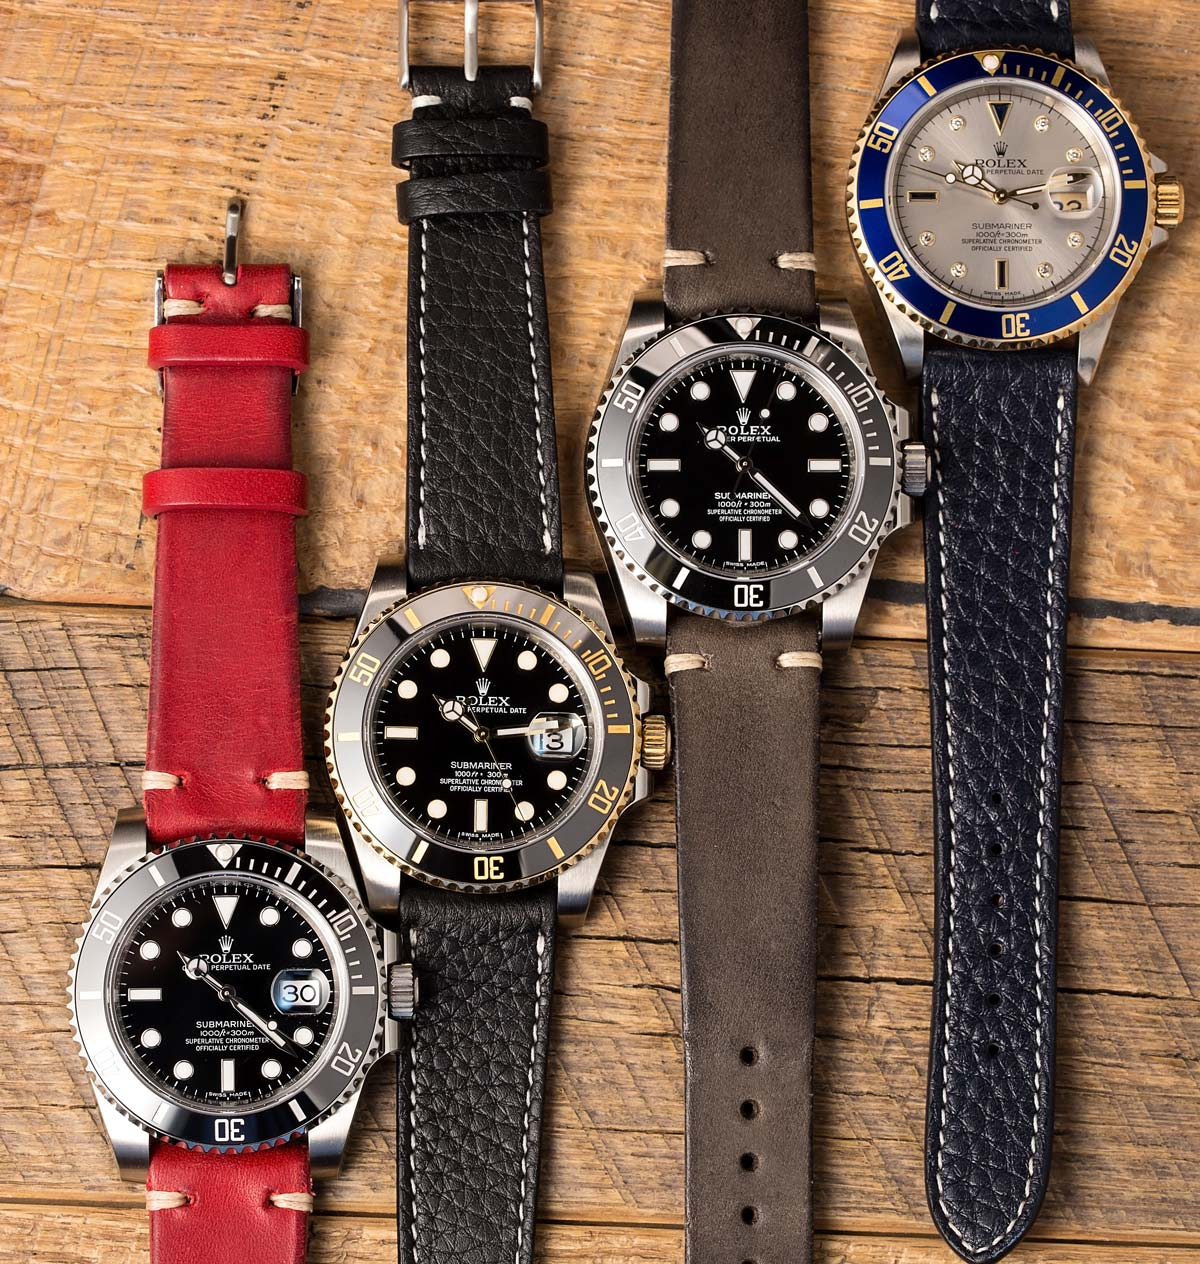 Rolex Submariner Dive Watches